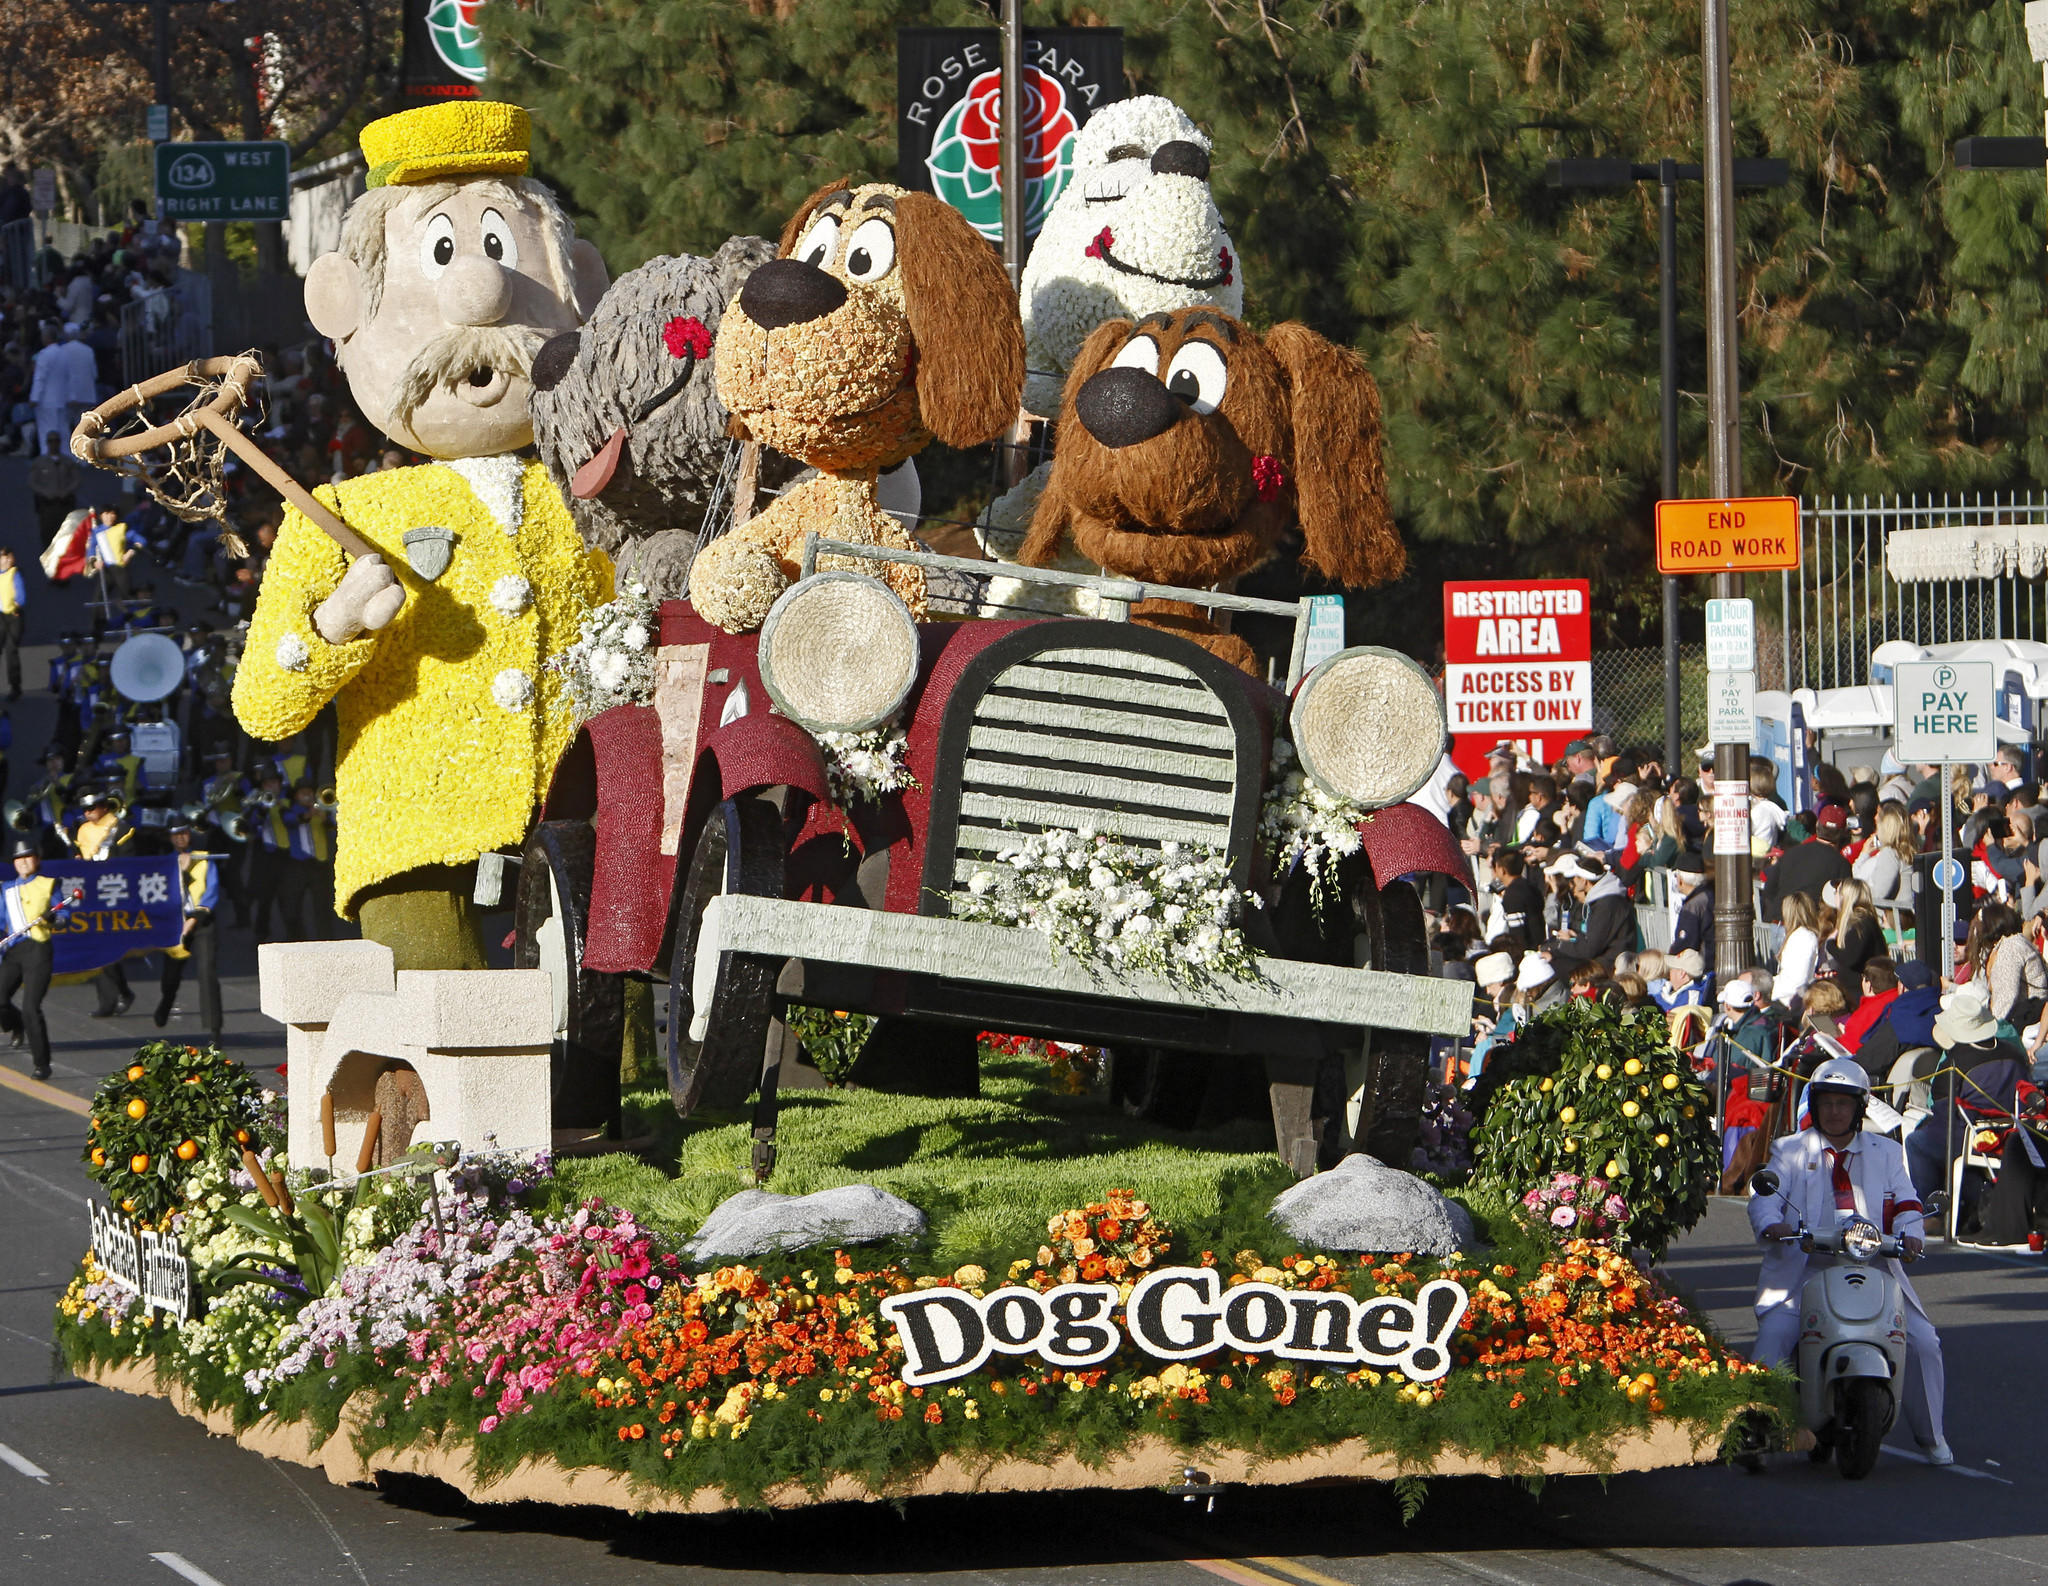 "The La Canada Flintridge float ""Dog Gone!"" won the Bob Hope Humor award for most comical and amusing entry at the 2014 Rose Parade in Pasadena on Wednesday, January 1, 2014."